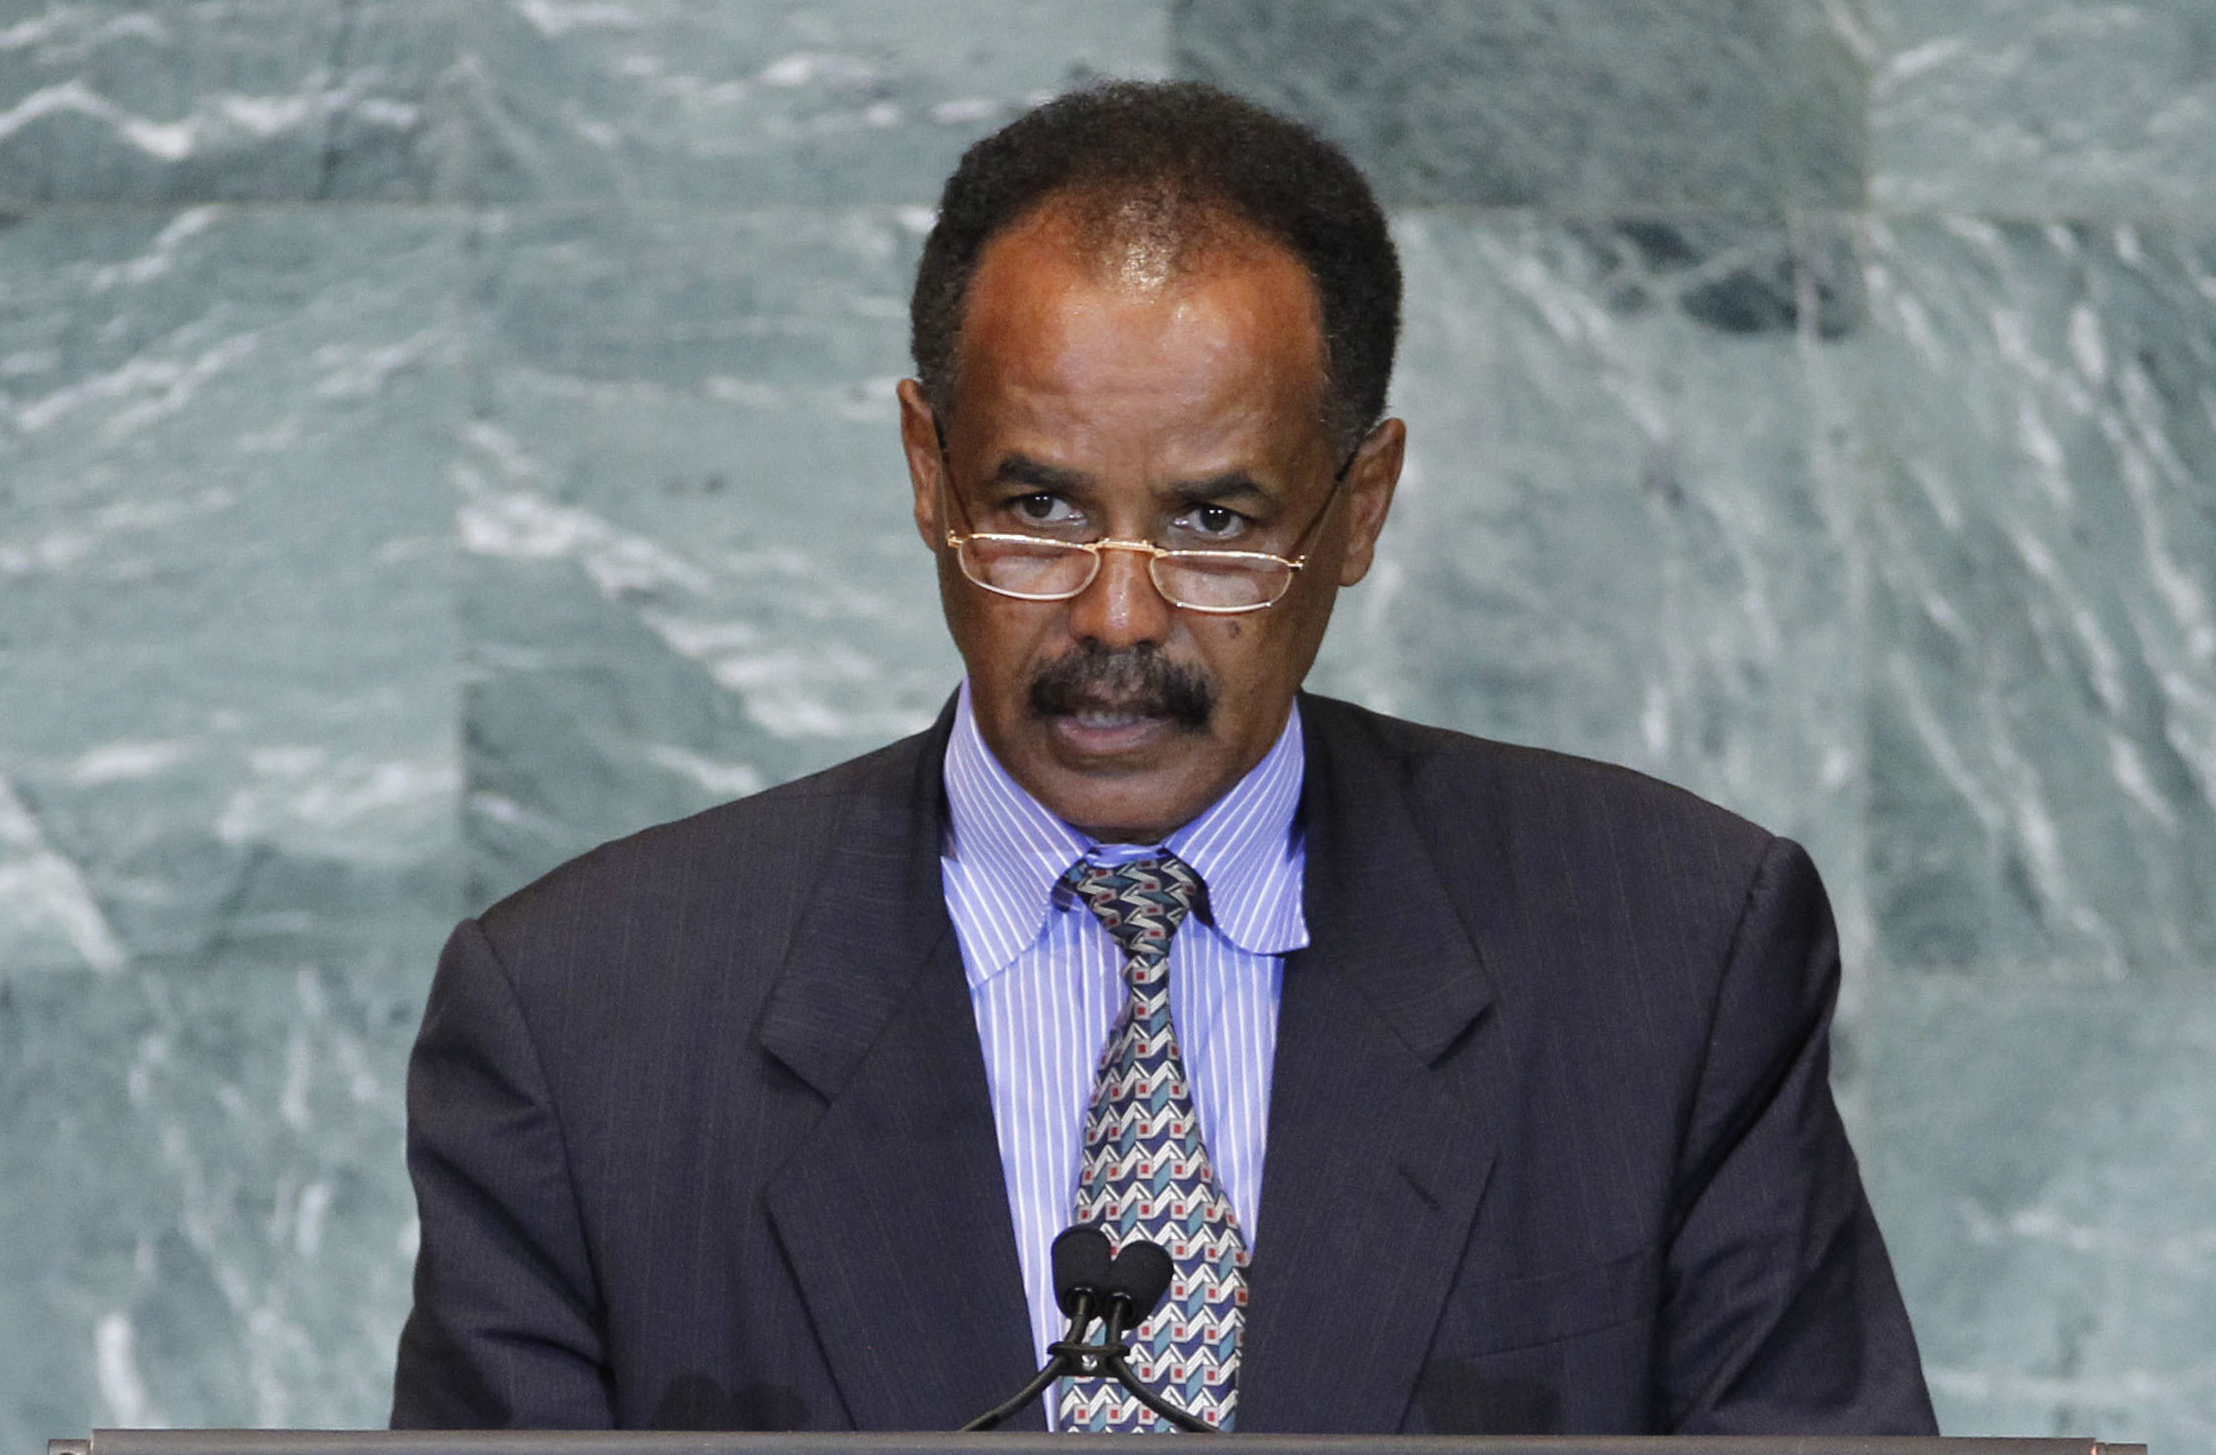 FILE - President Isaias Afwerki of Eritrea addresses the 66th session of the U.N. General Assembly at U.N. headquarters, Sept. 23, 2011. Afwerki is criticizing Israel's plan to deport tens of thousands of African migrants, saying they deserve far mor